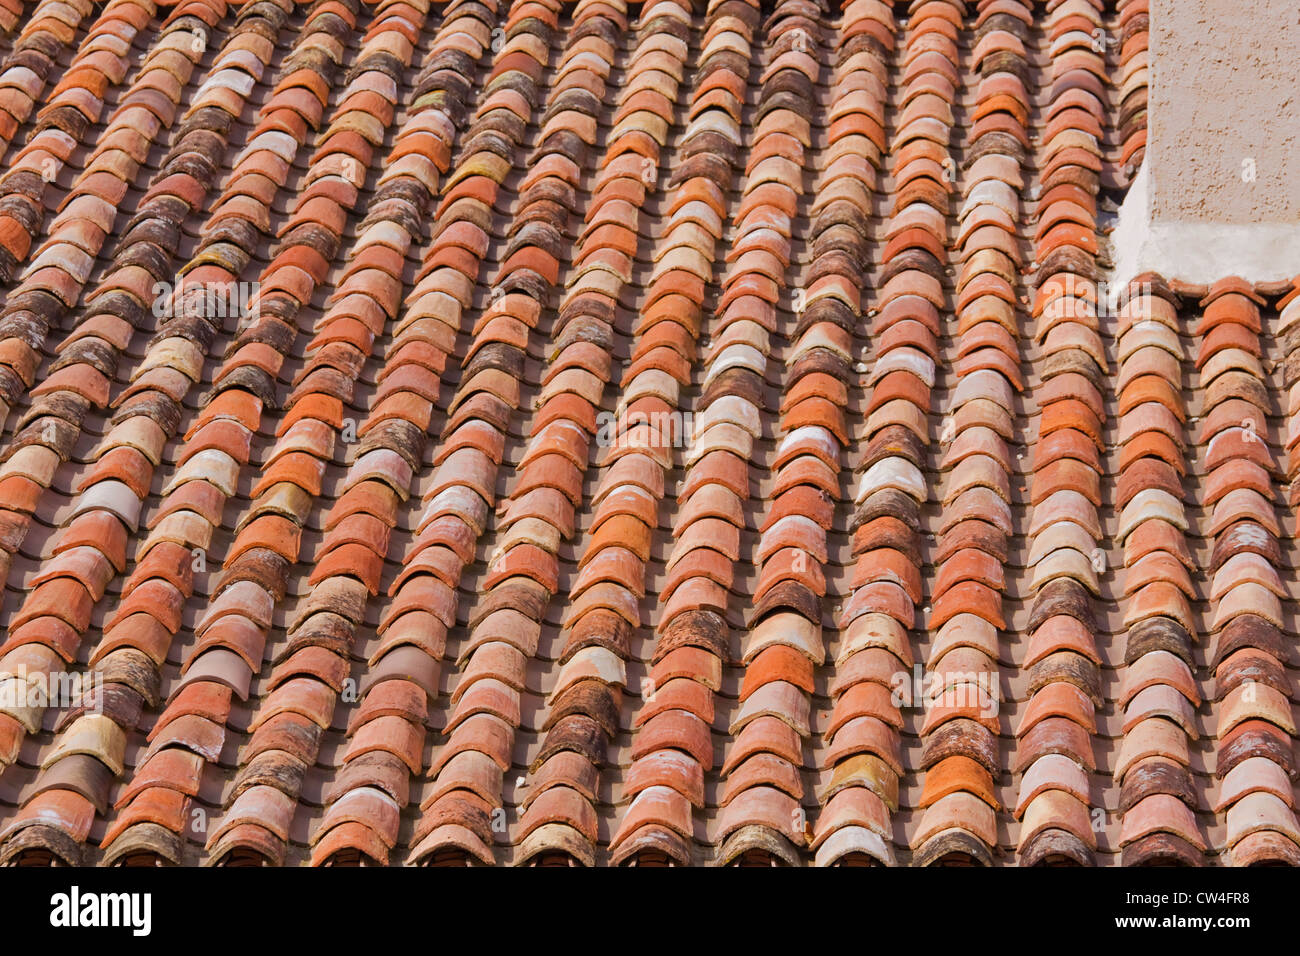 coloured roof tiles stockfotos coloured roof tiles bilder alamy. Black Bedroom Furniture Sets. Home Design Ideas